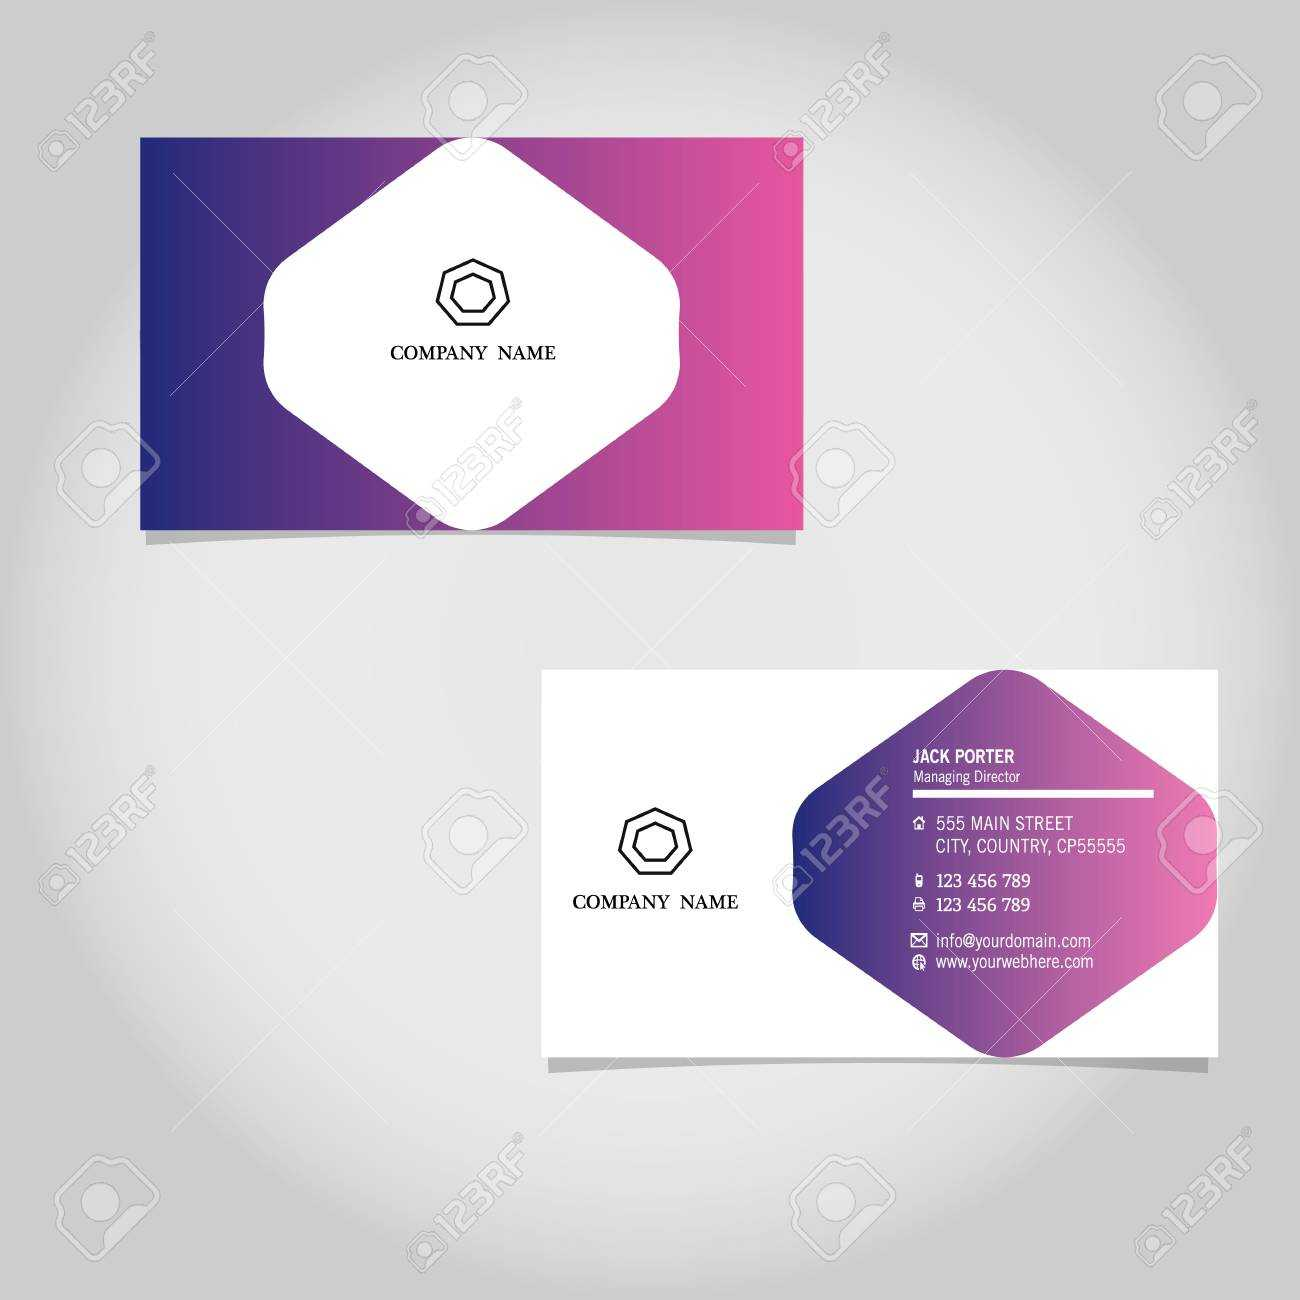 Vector Business Card Template Design Adobe Illustrator For Adobe Illustrator Card Template